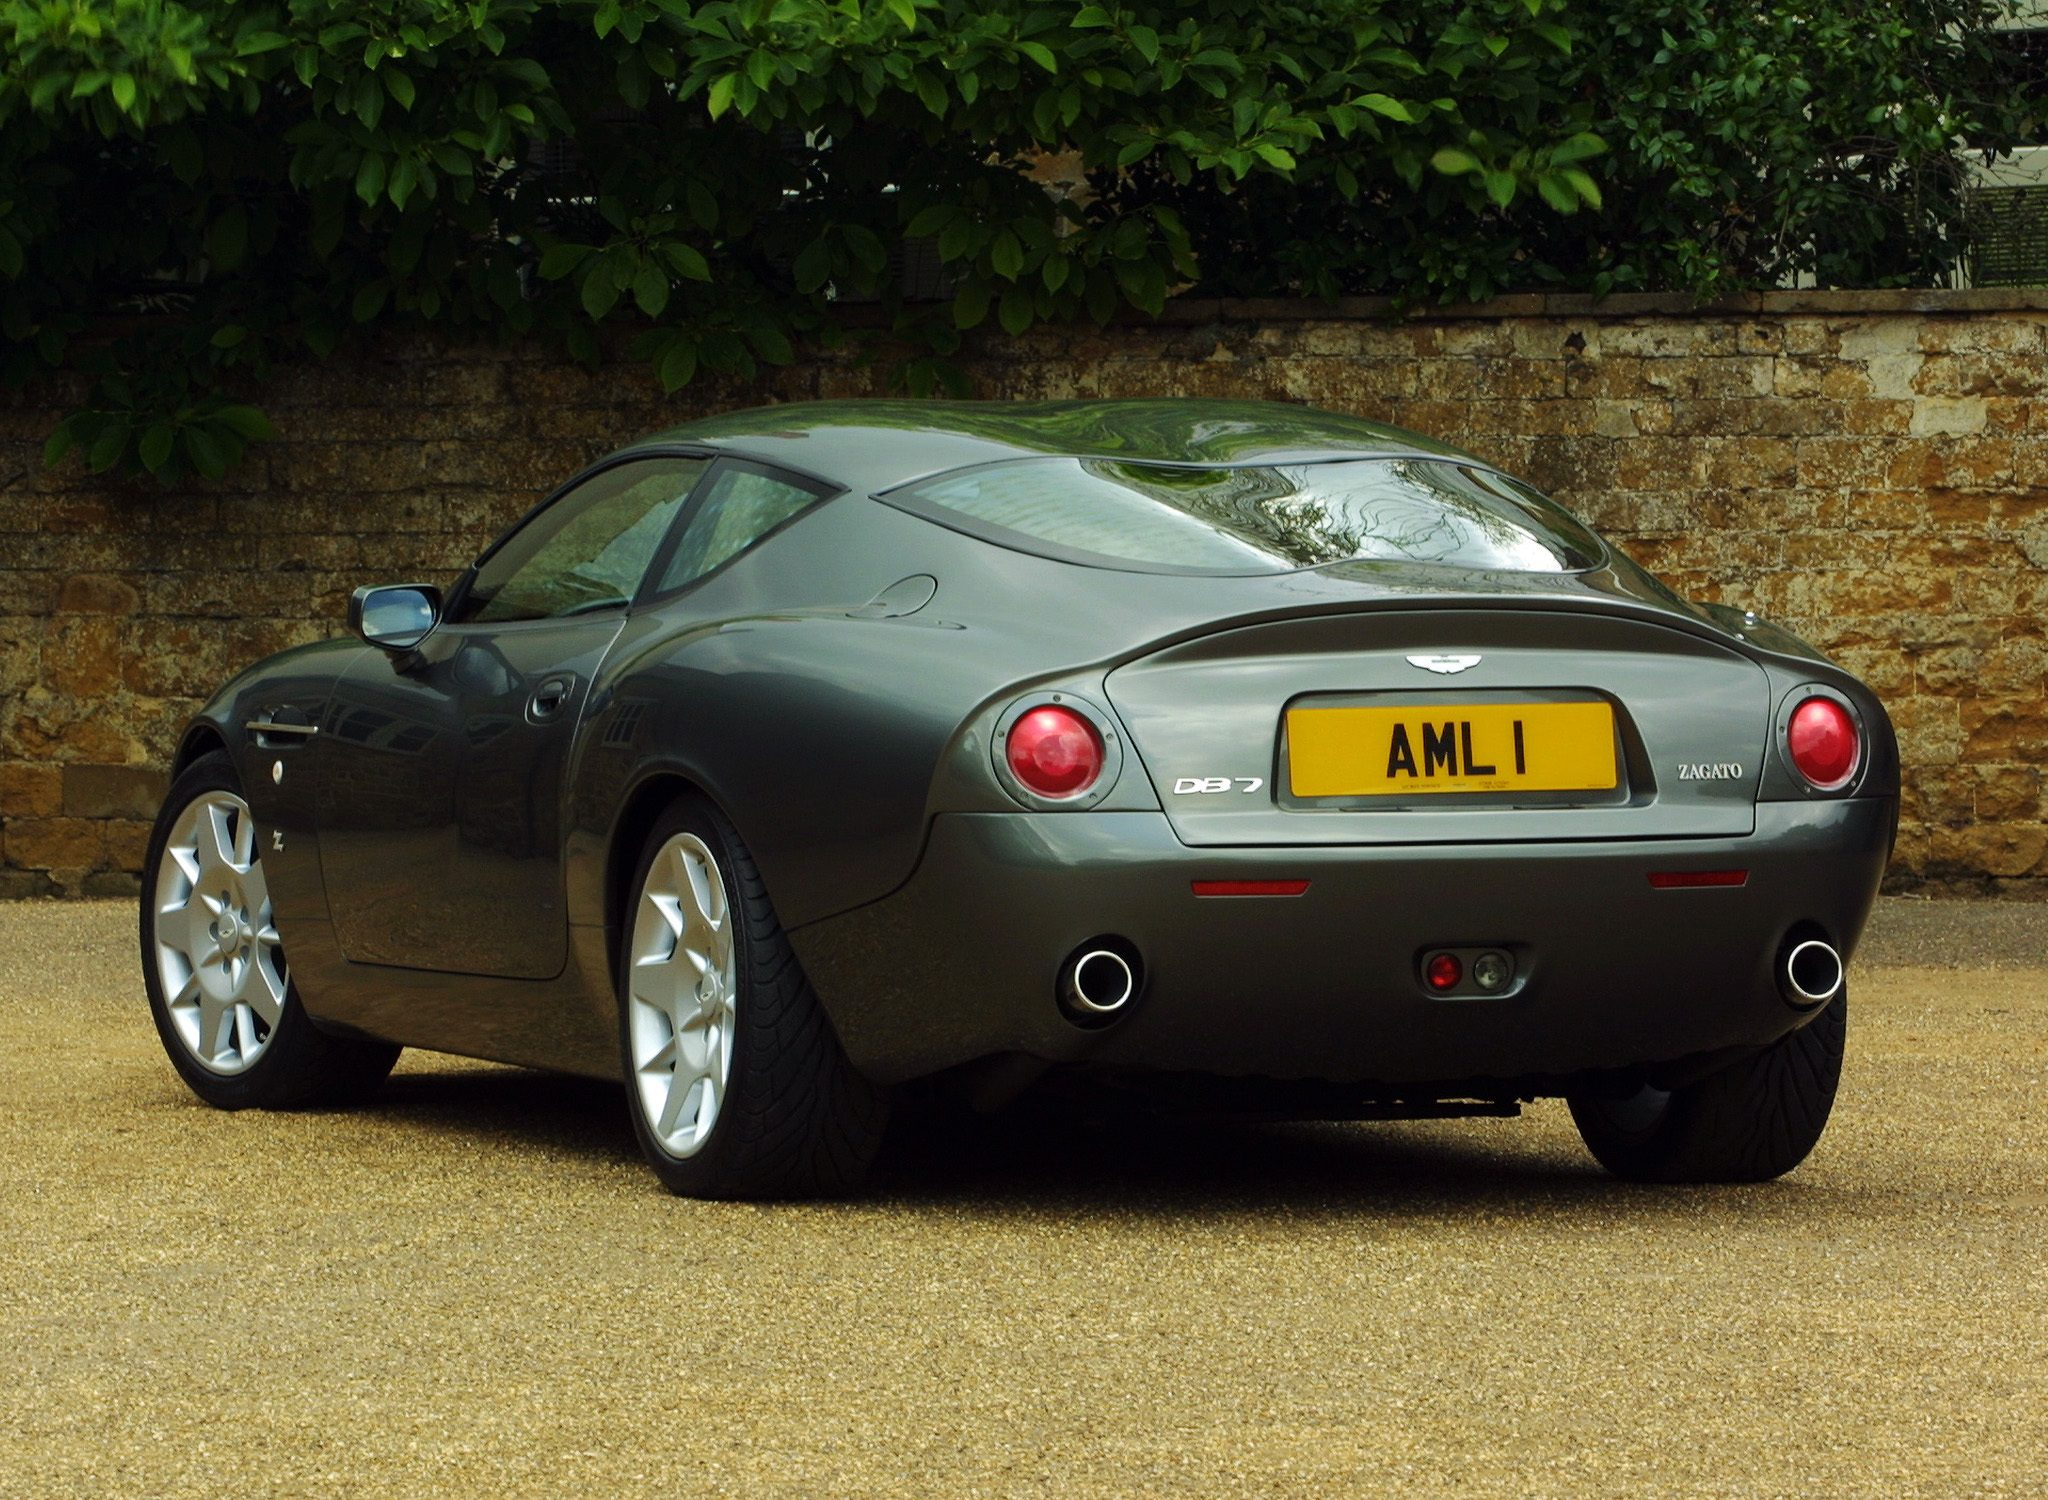 2002 Aston Martin Db7 Zagato Wallpapers Viruscars